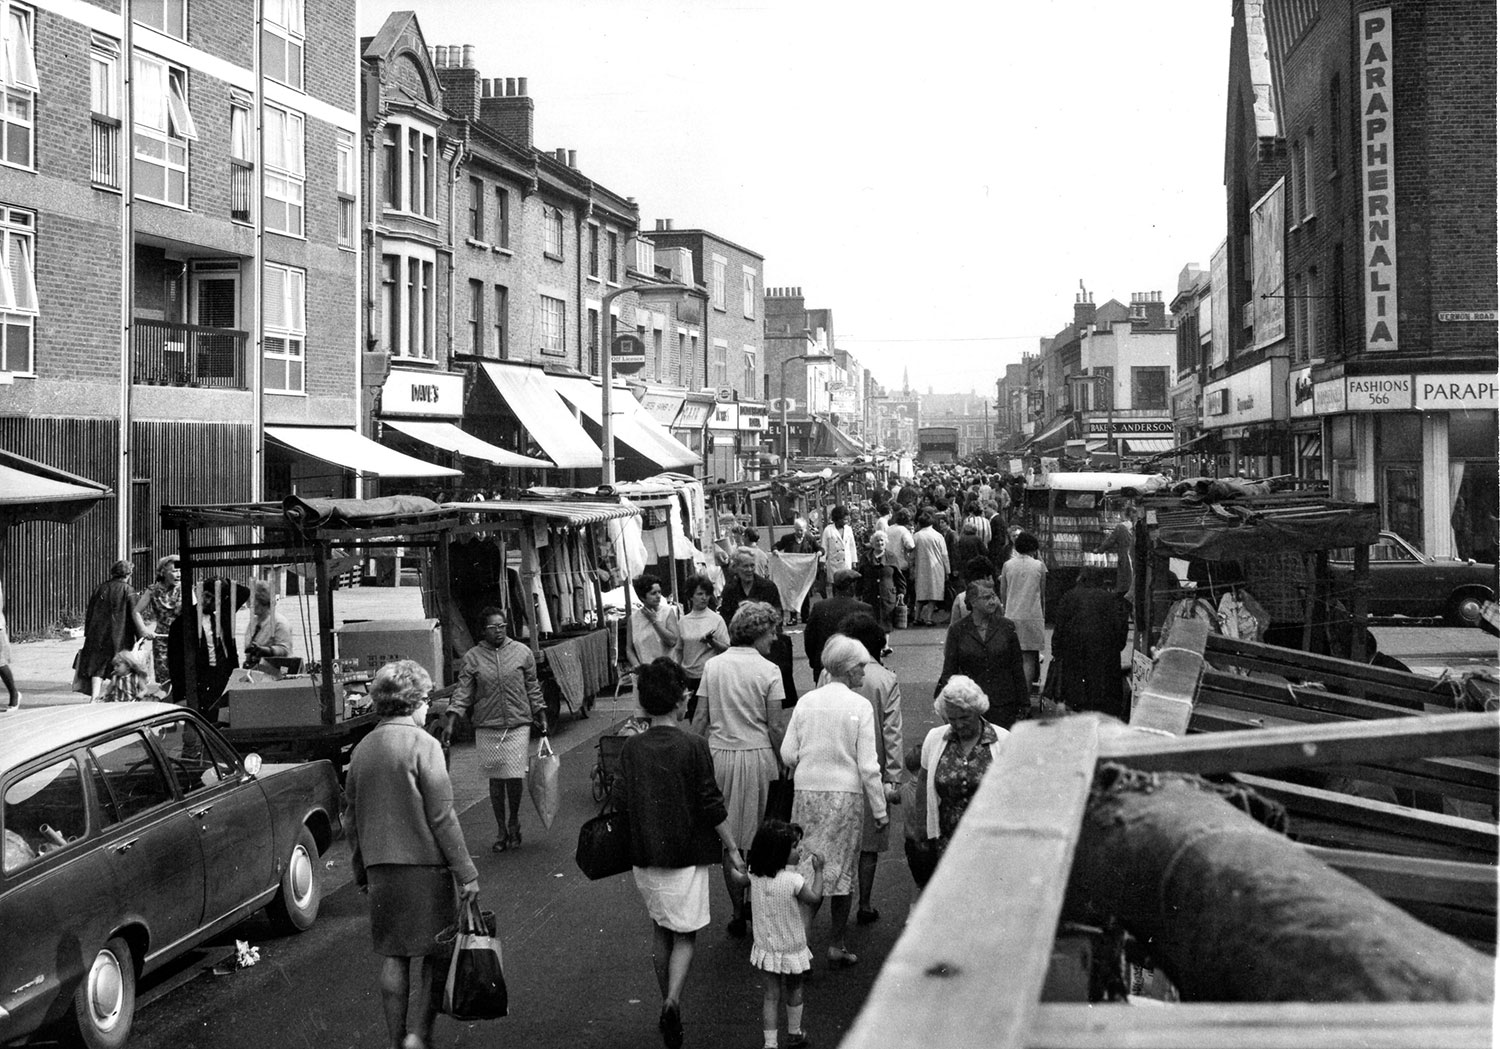 Archive image of Roman Road Market, East London